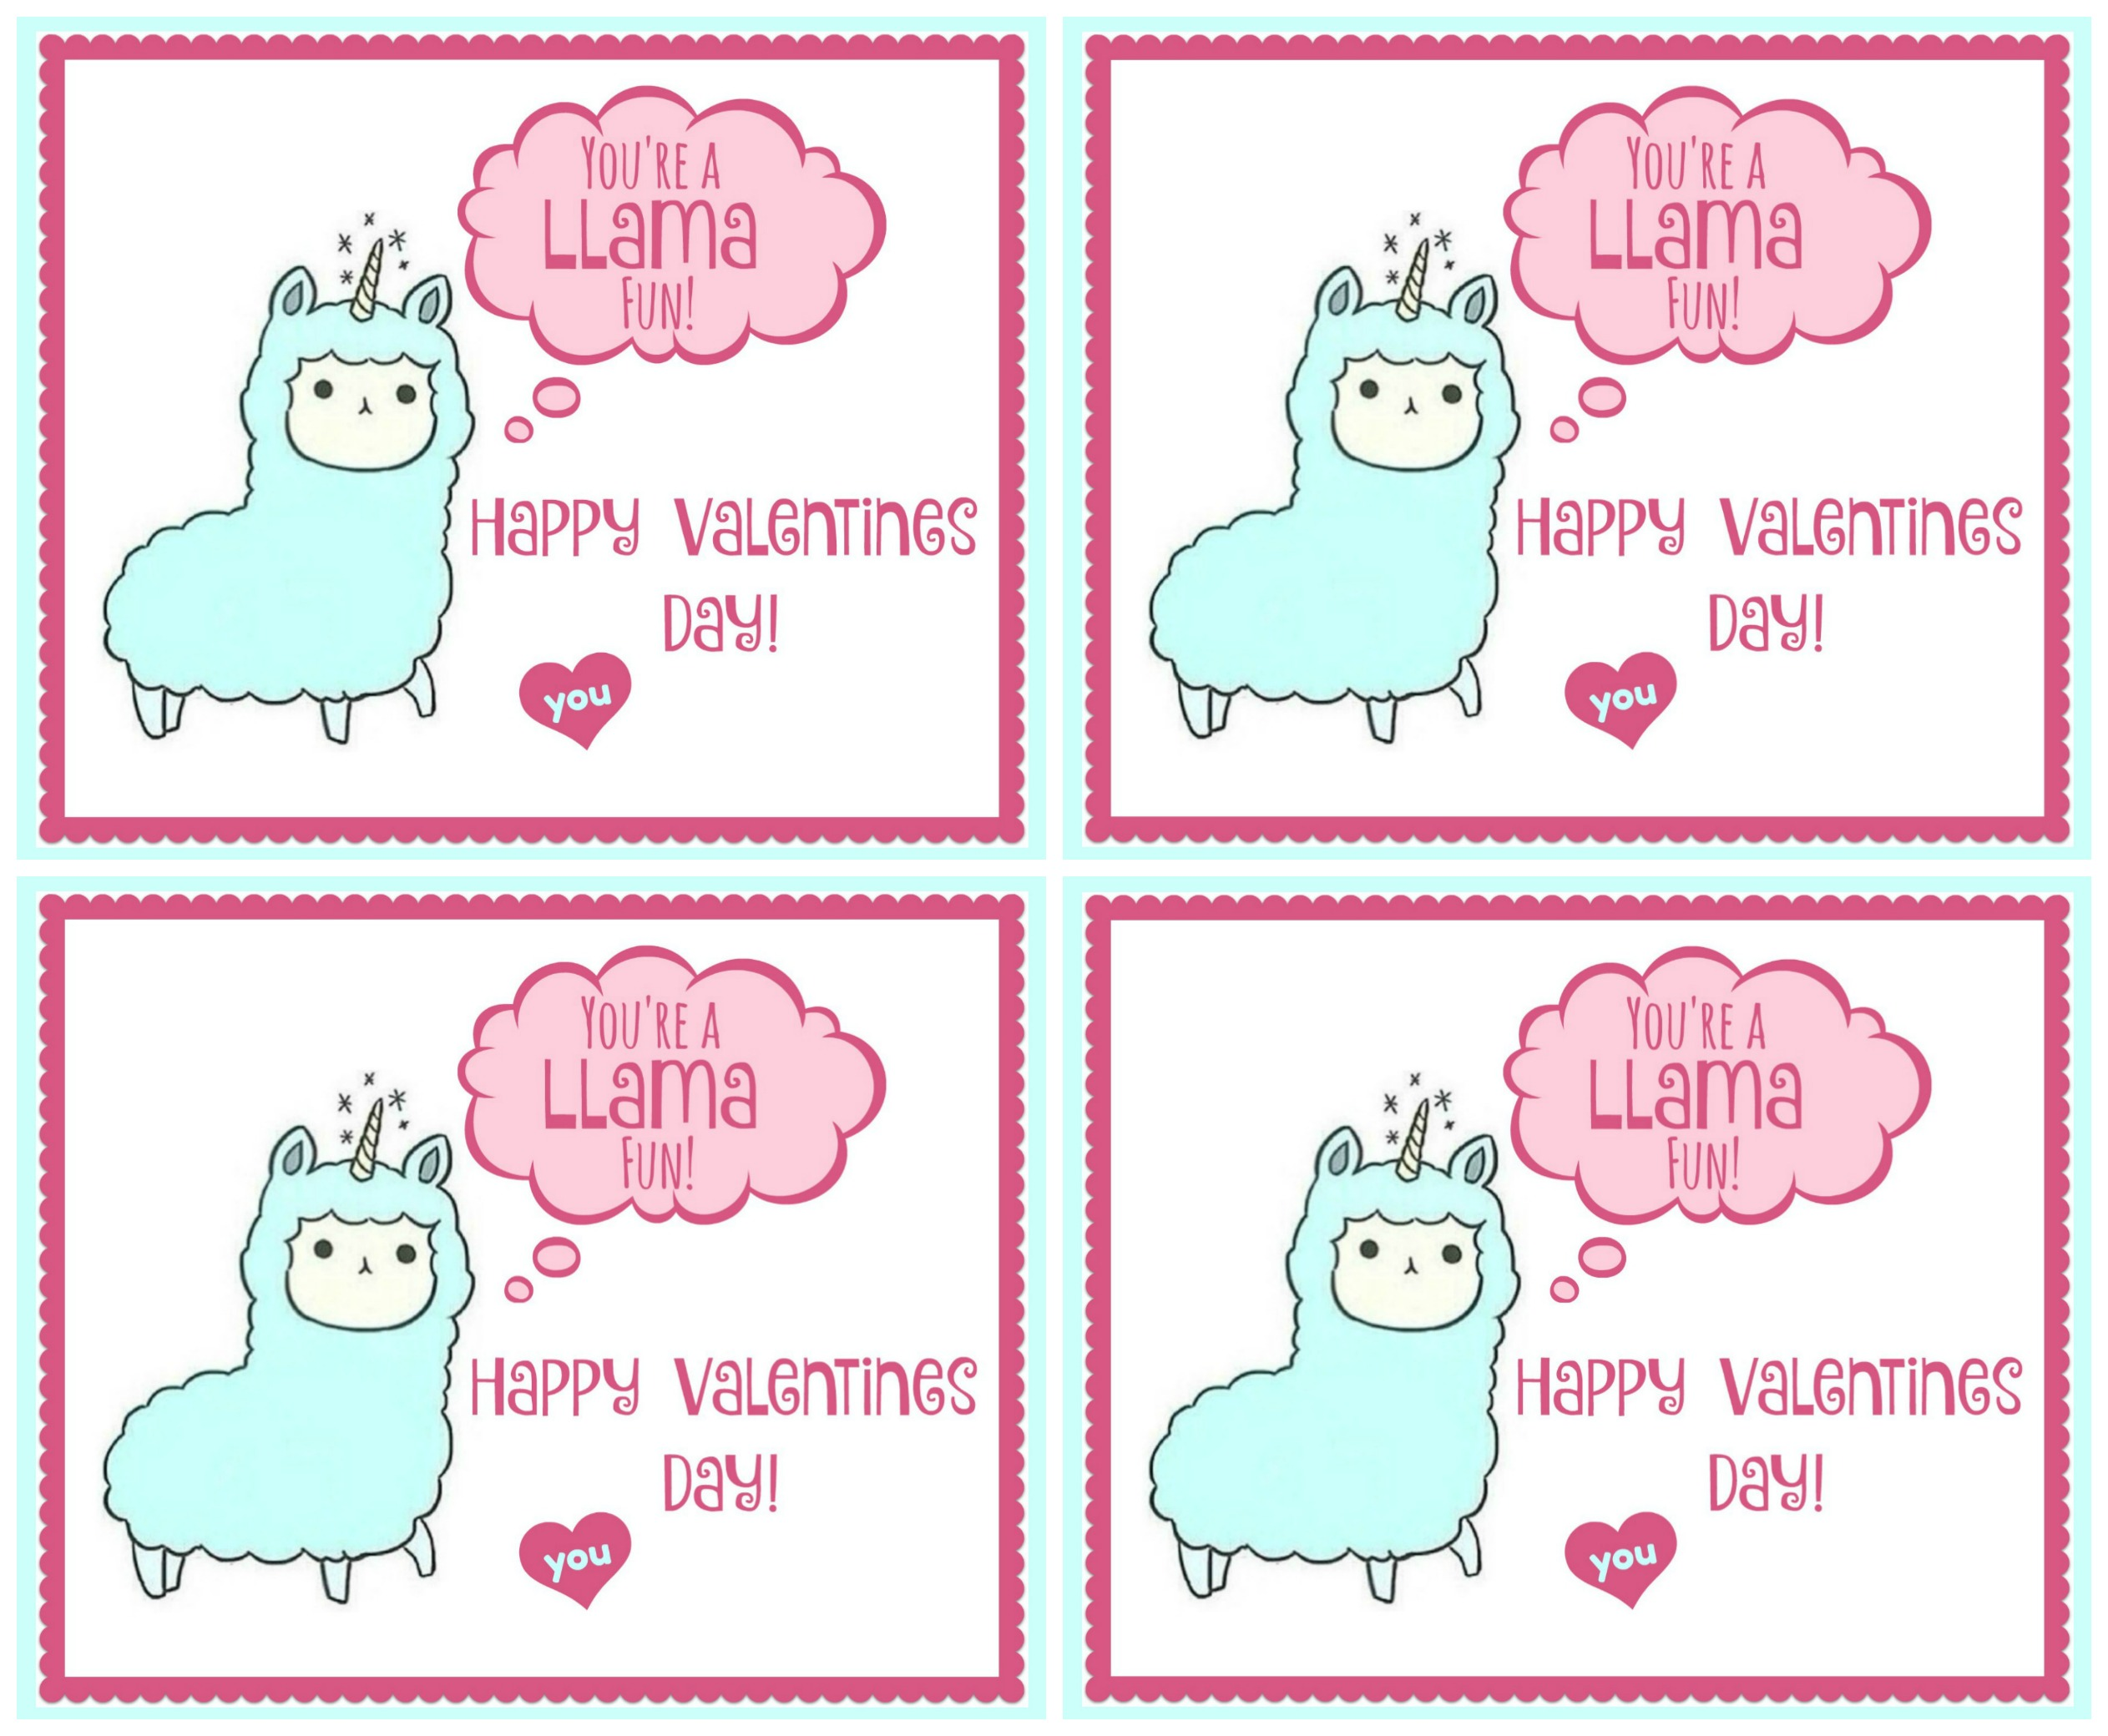 Llama Valentine Printable #valentinesday #diyvalentine #diy #easy #valentine #kids #holiday